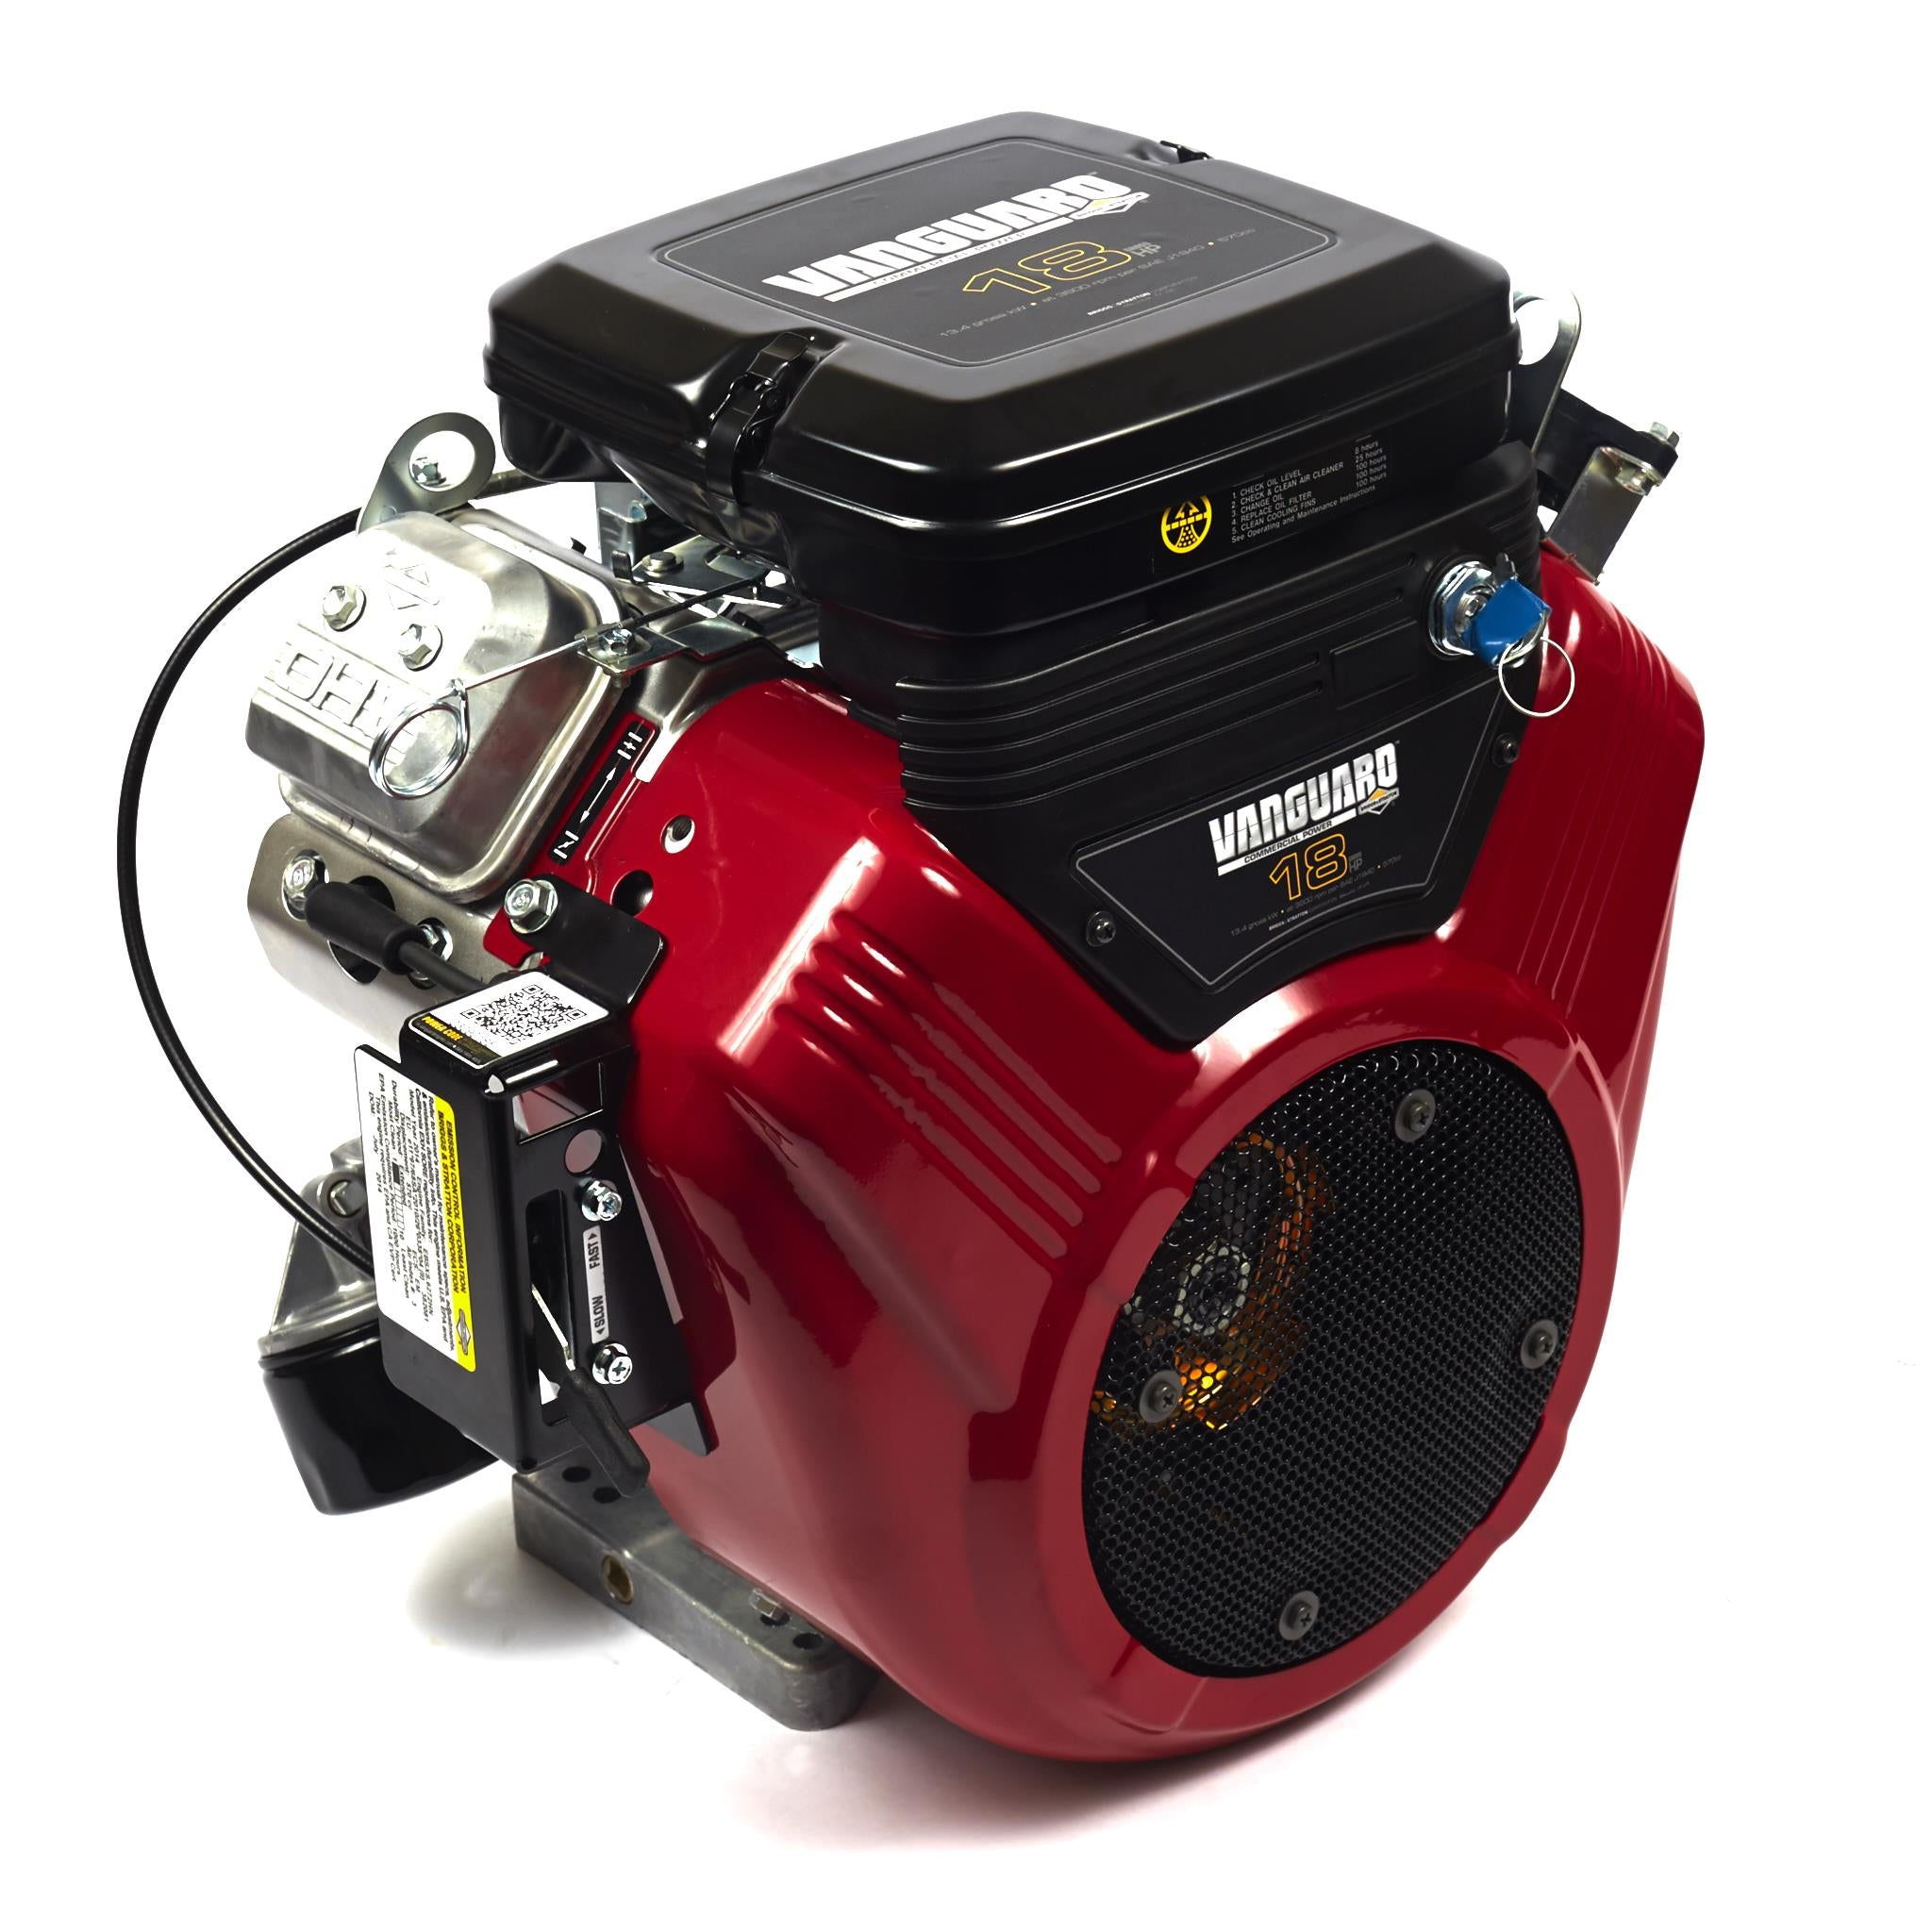 Briggs and Stratton 18 HP Vanguard Engine